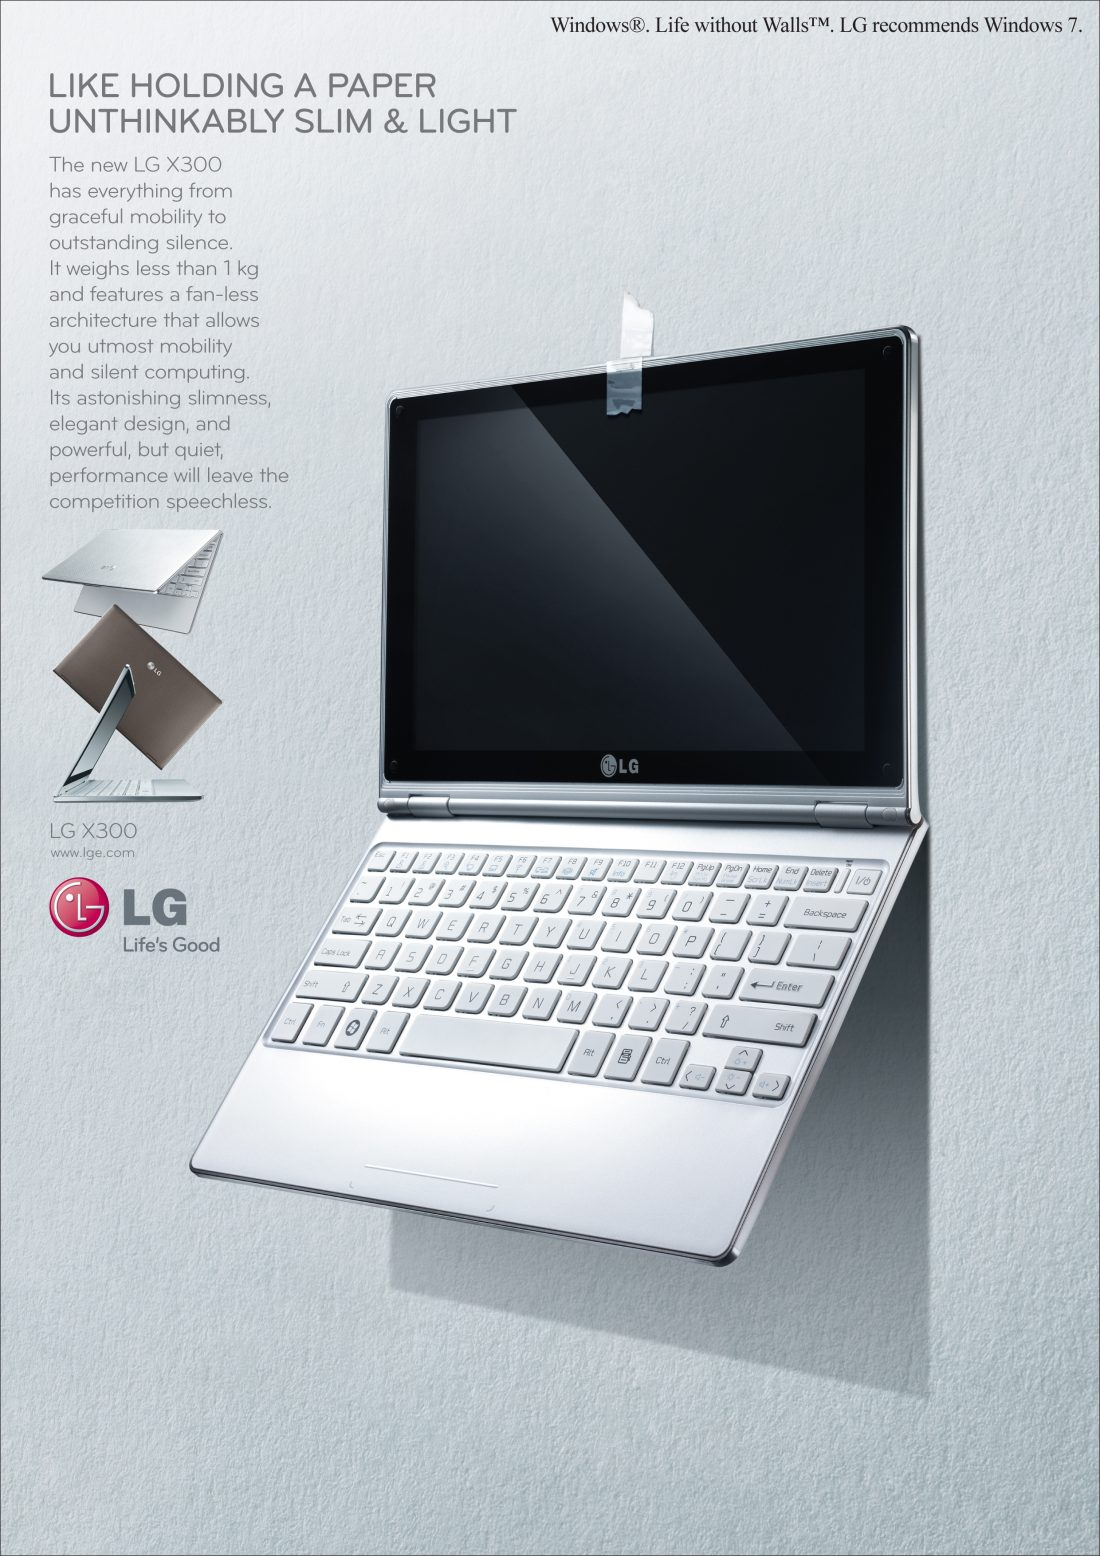 A promotional poster for the LG X300